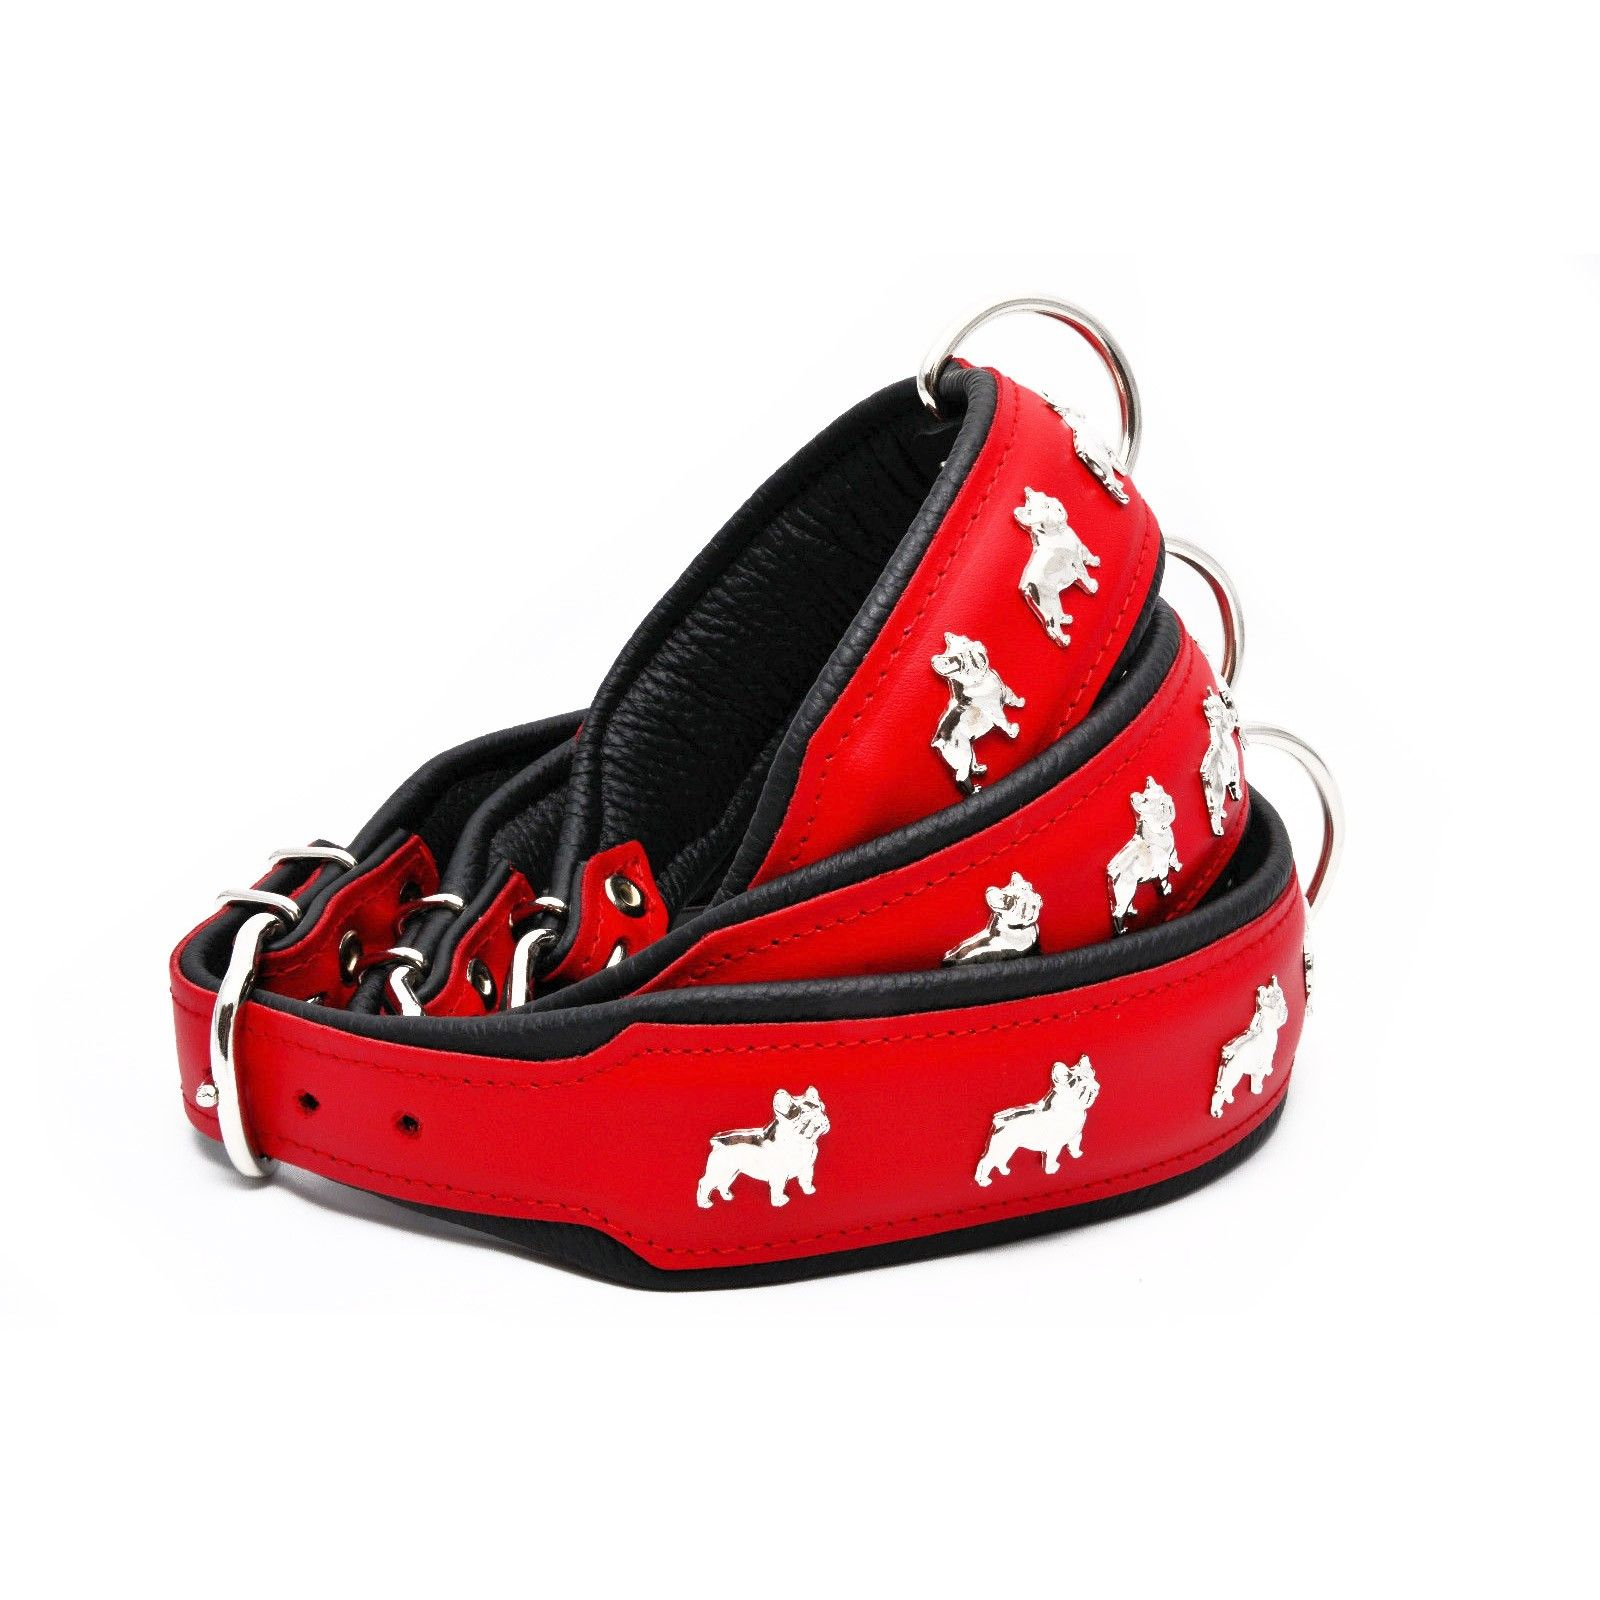 Genuine Leather Thick Padded Dog Collar in Red / Black